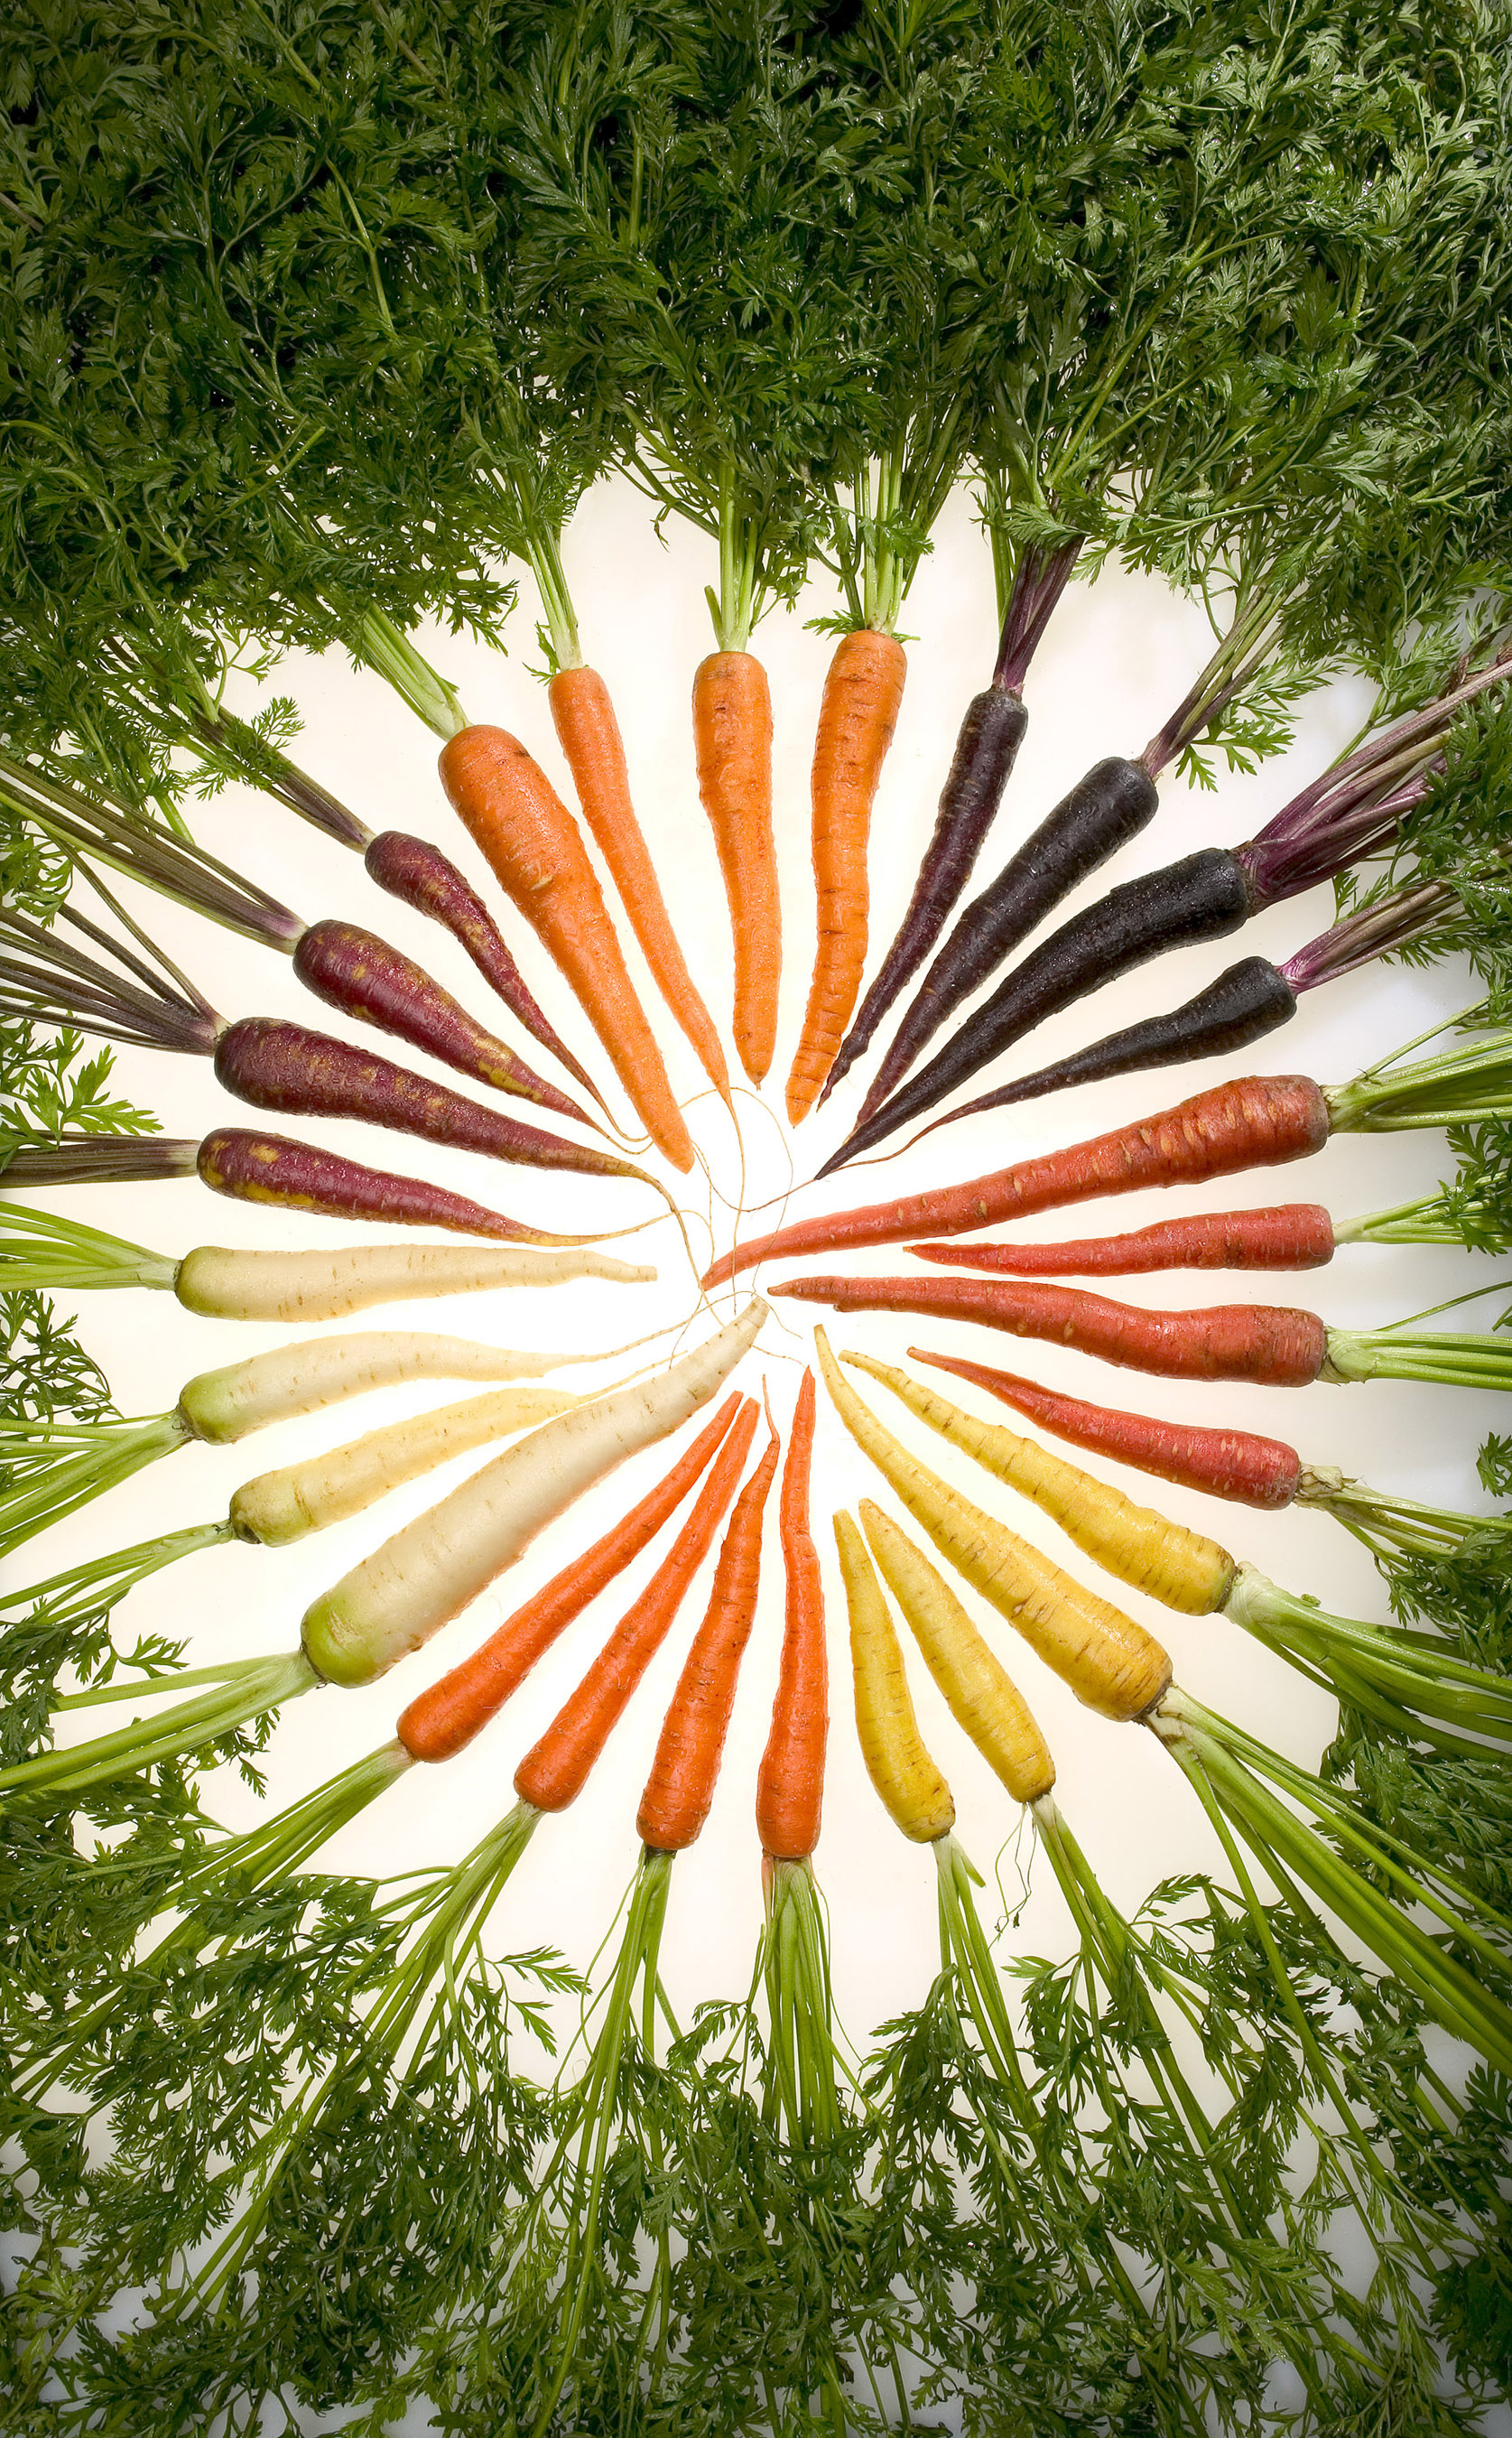 Carrots of Many Colors